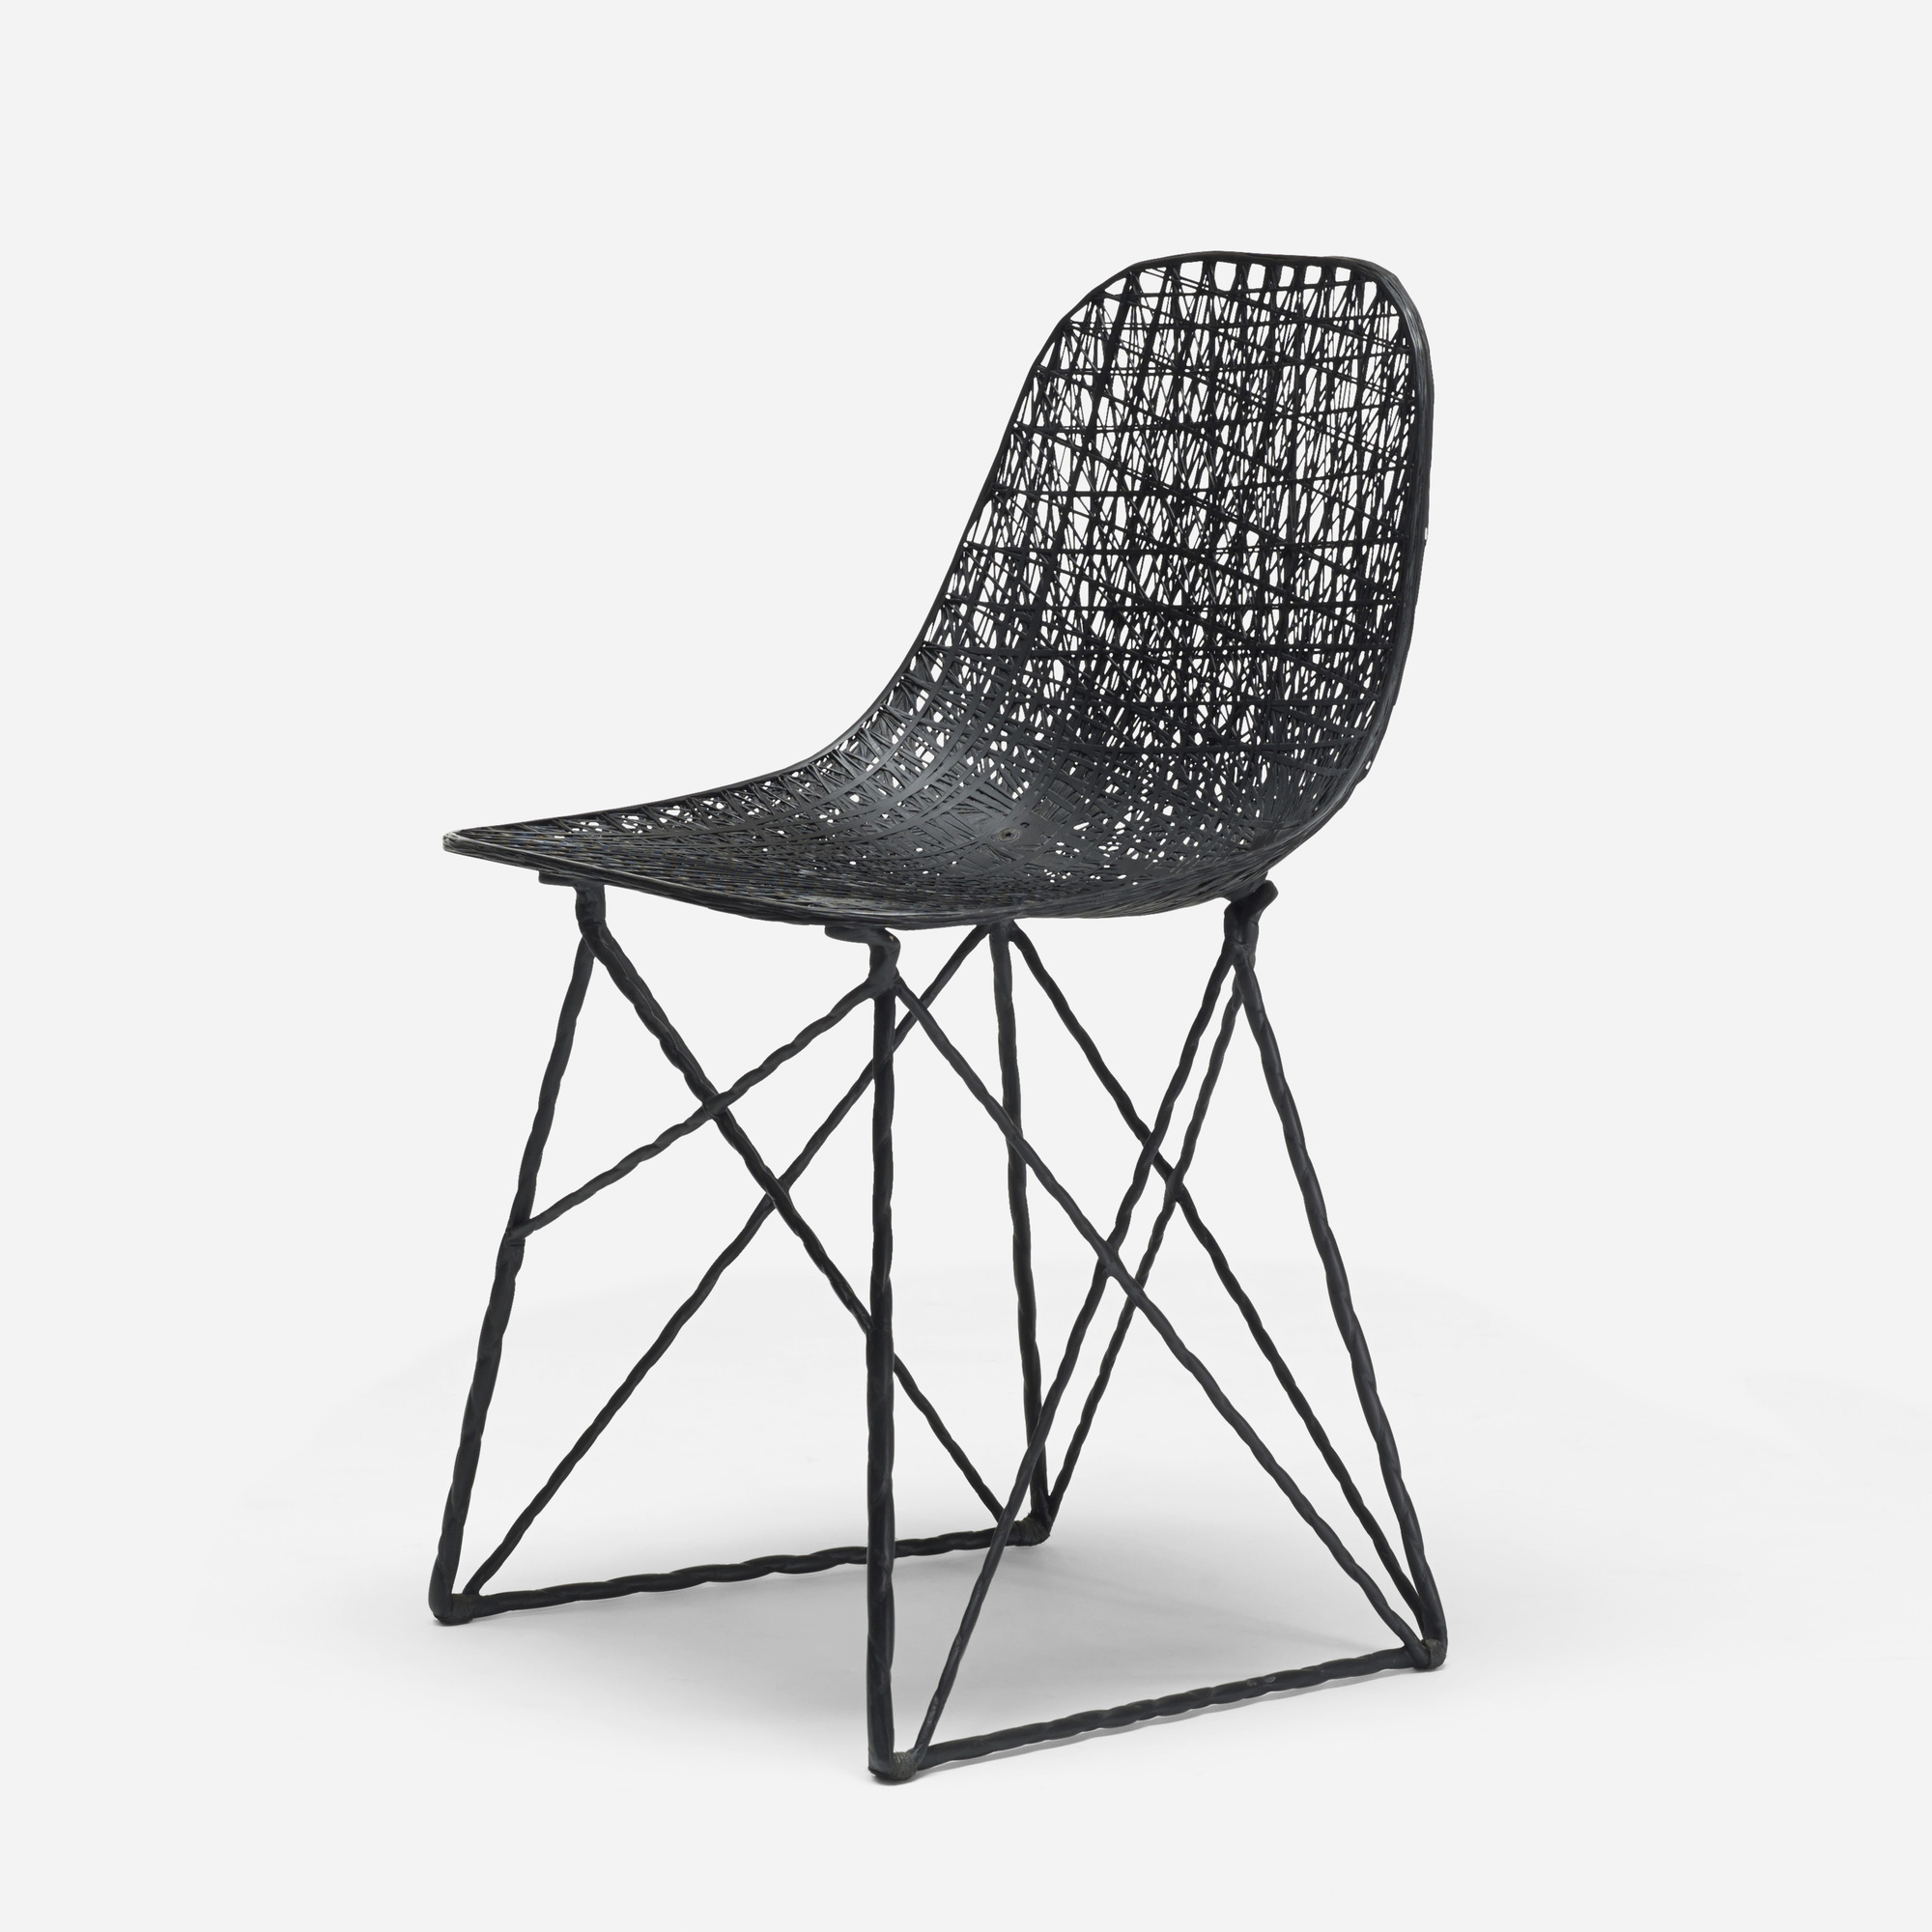 607: Bertjan Pot And Marcel Wanders / Carbon Fiber Chair (1 Of 6) ...